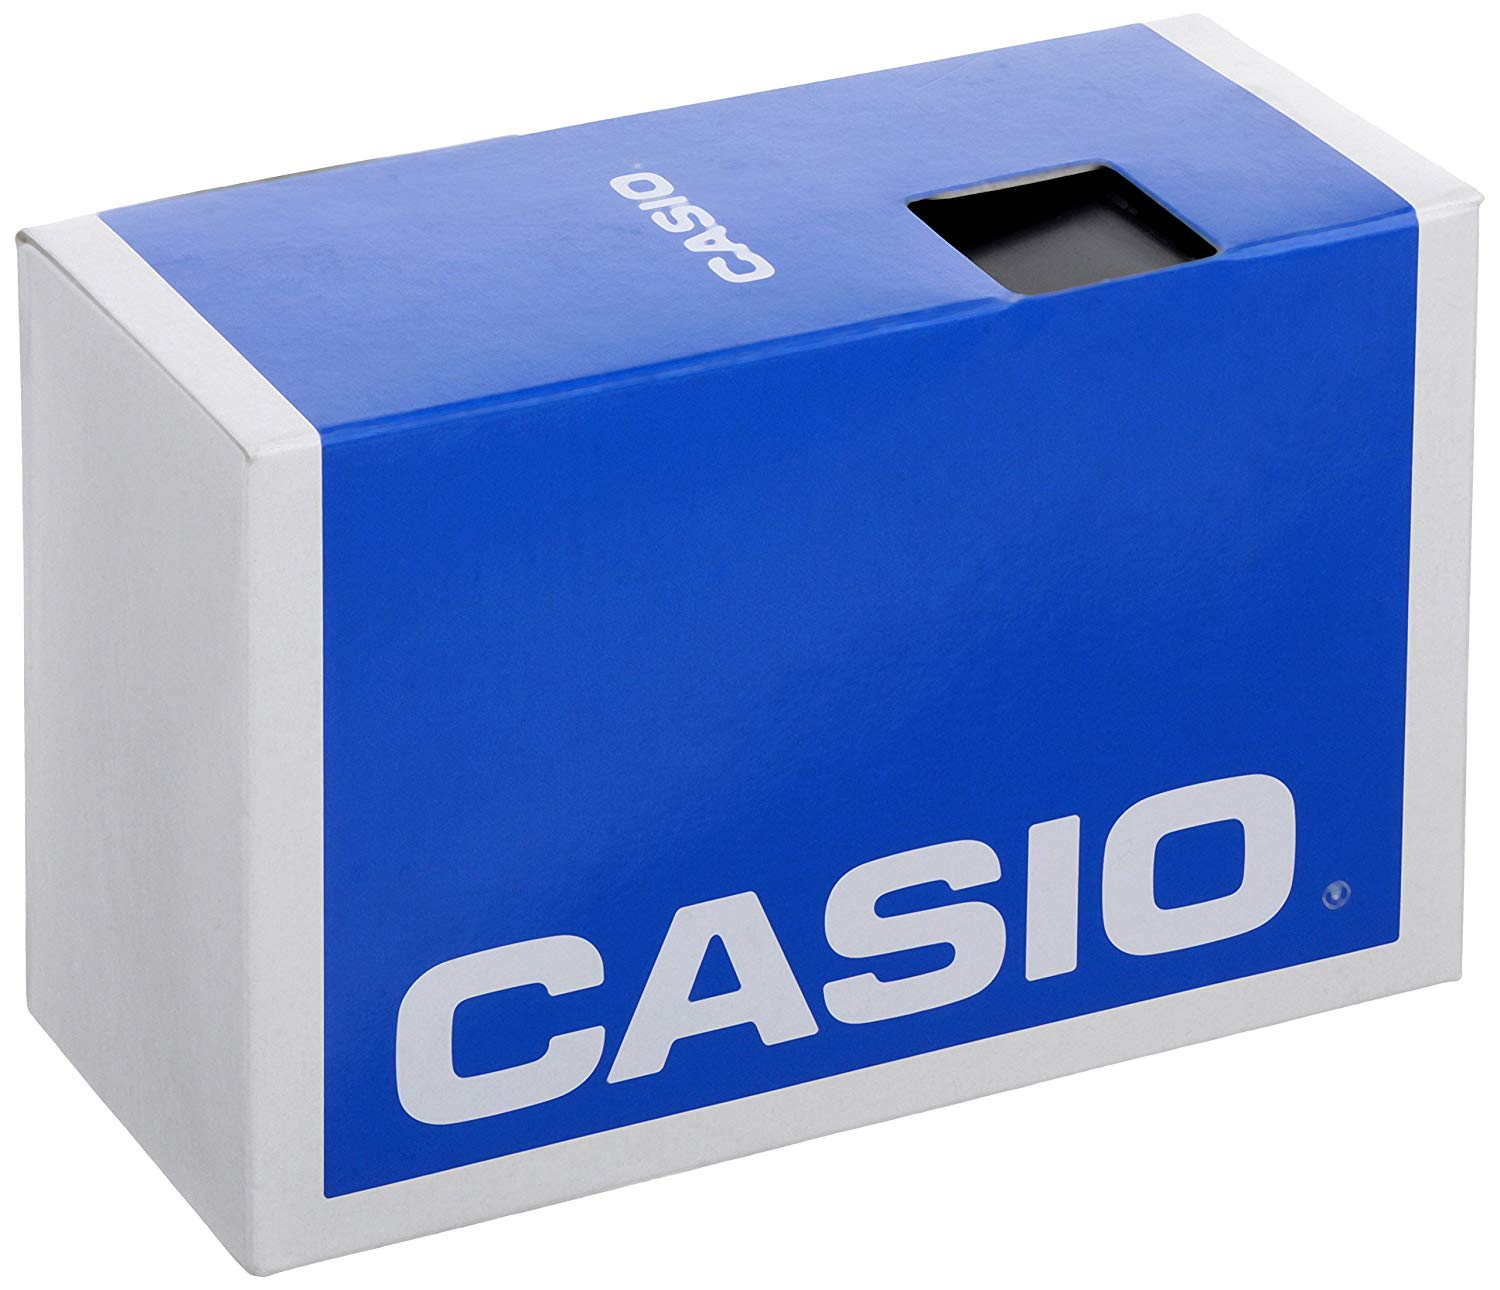 Casio Men's Casual Sports watch #MQ382A